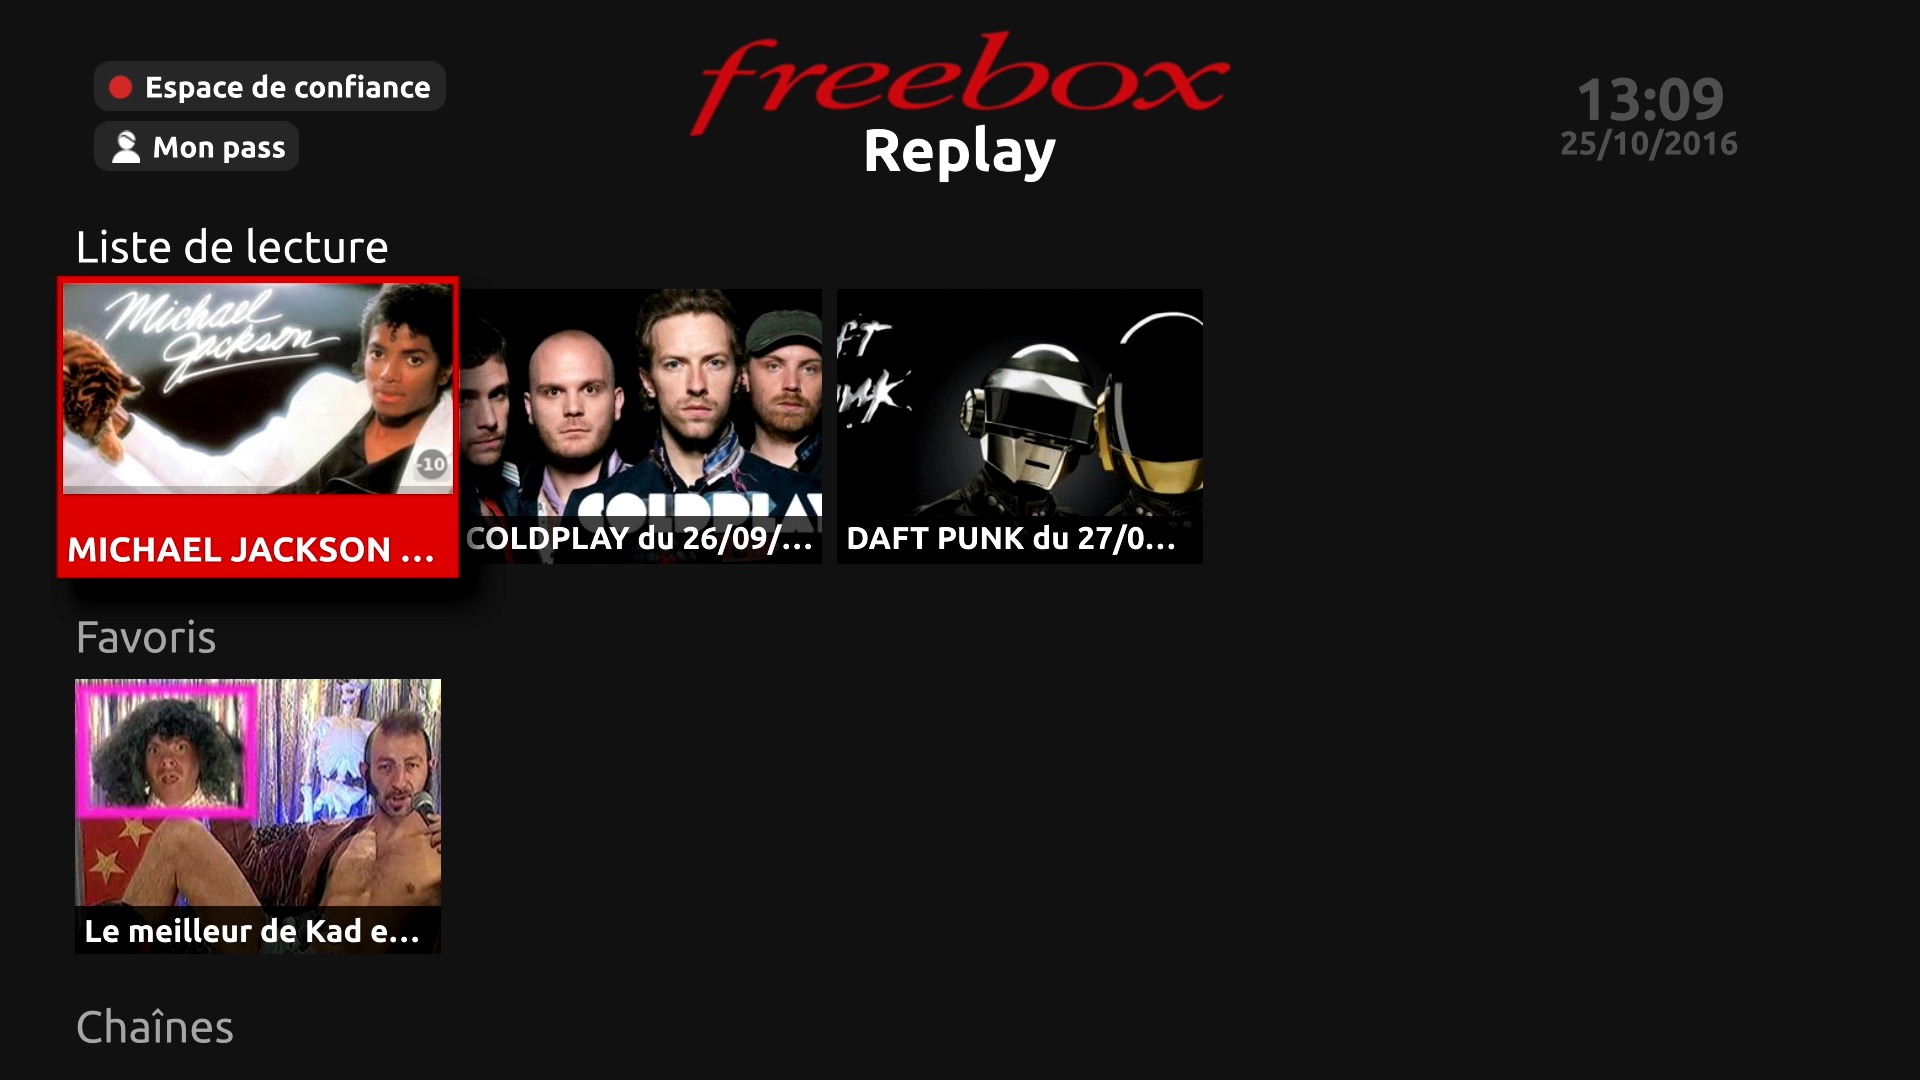 freebox-replay-2016-05